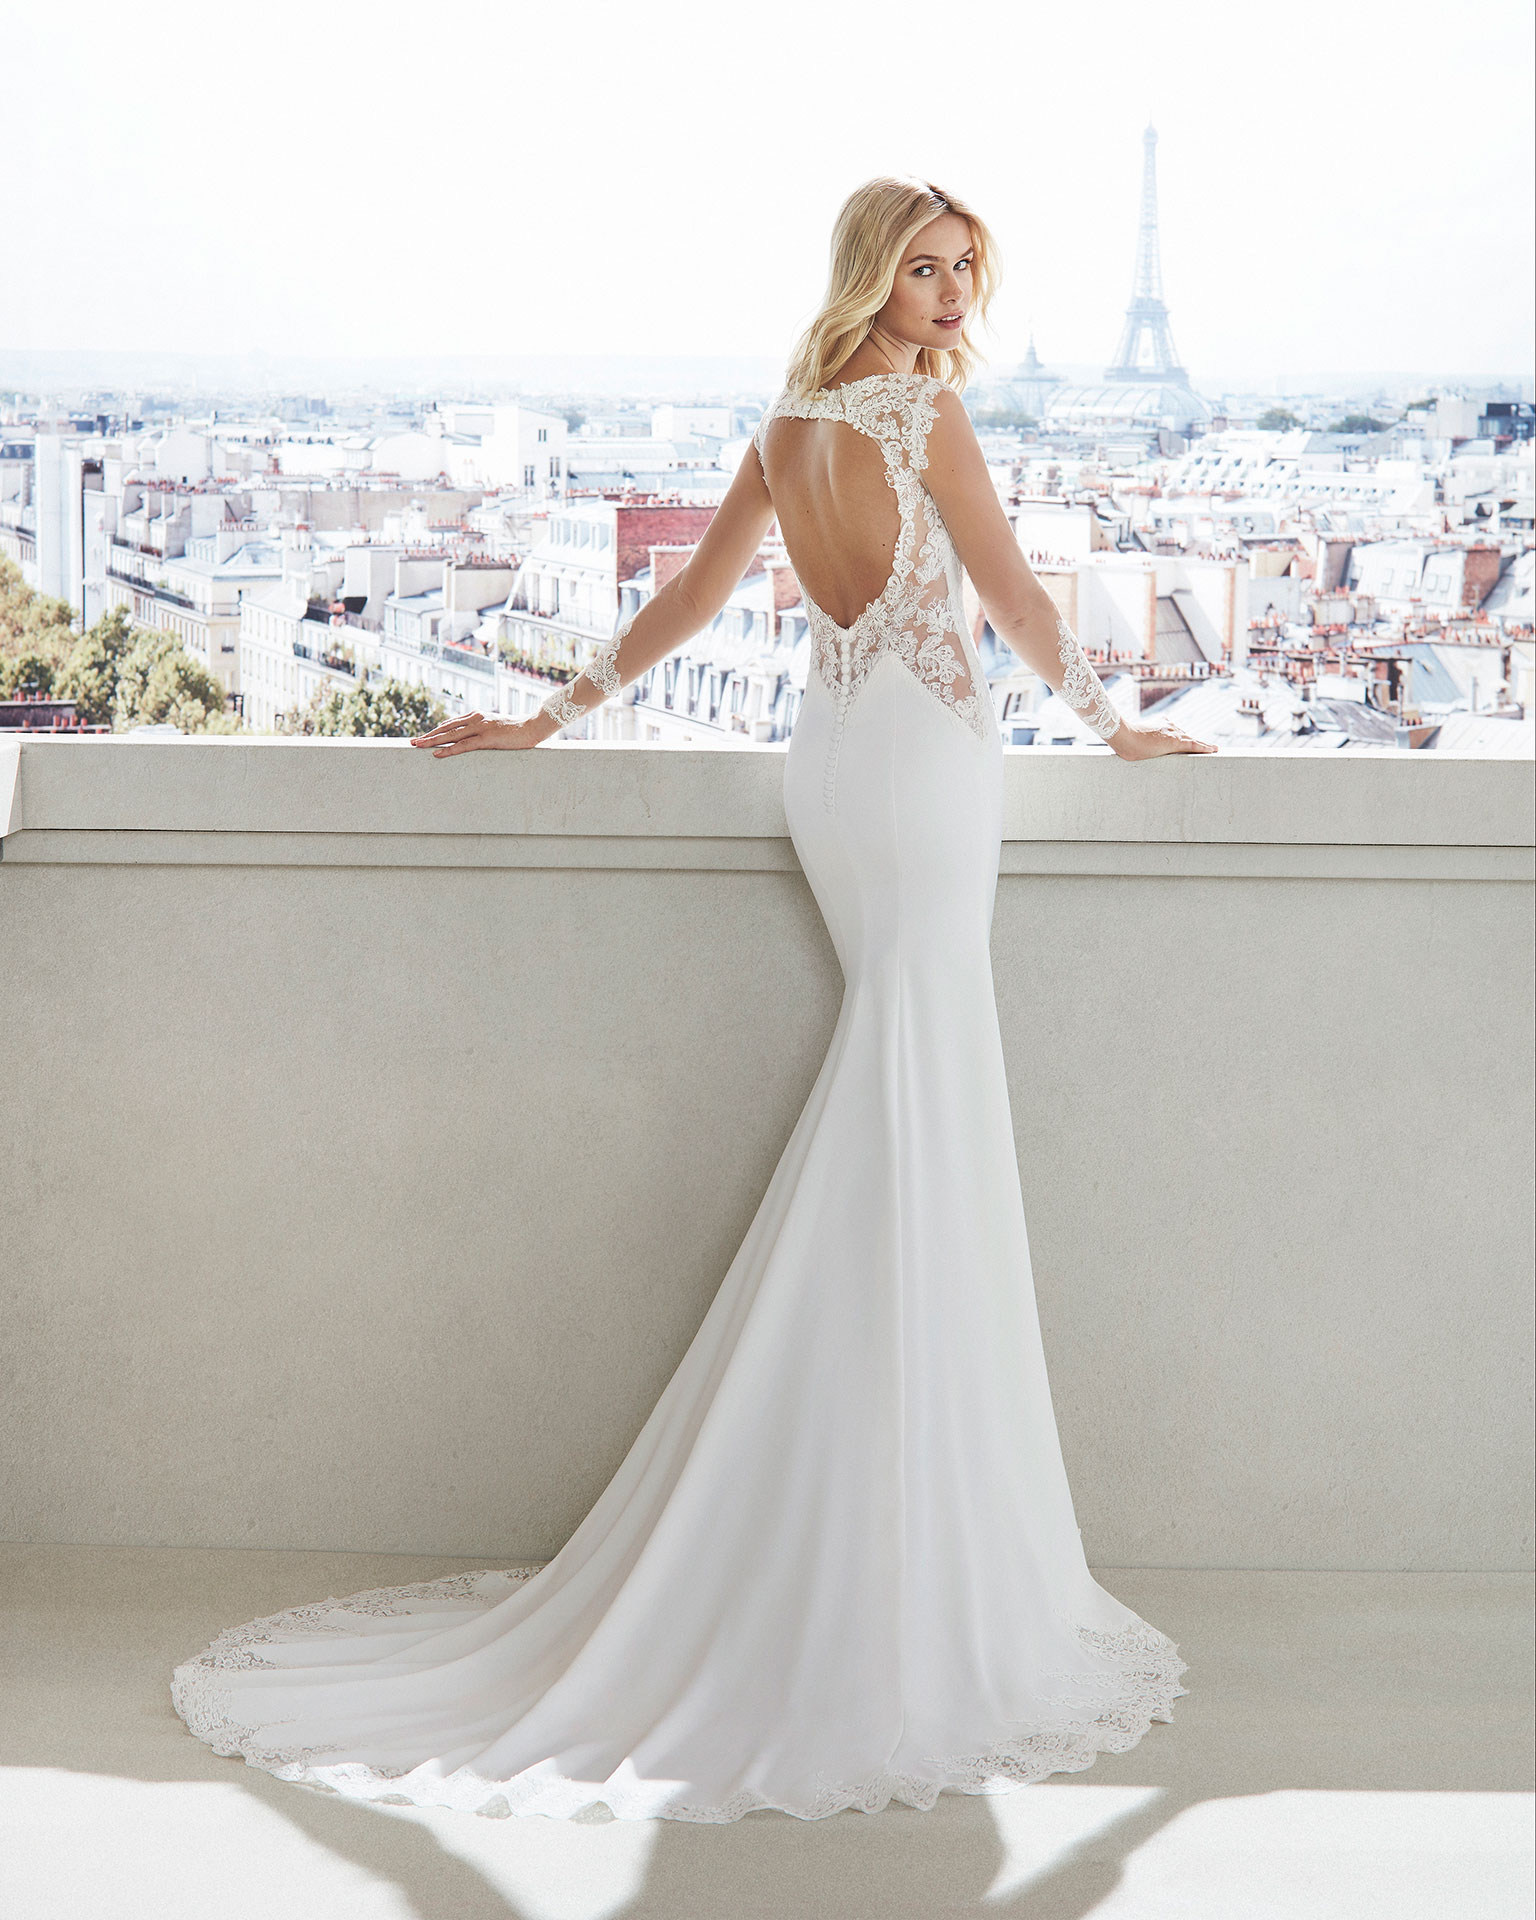 Sheath-style wedding dress in crepe. Lace bodice with bateau neckline, long sleeves, and train with lace insets. Available in natural. 2019  Collection.